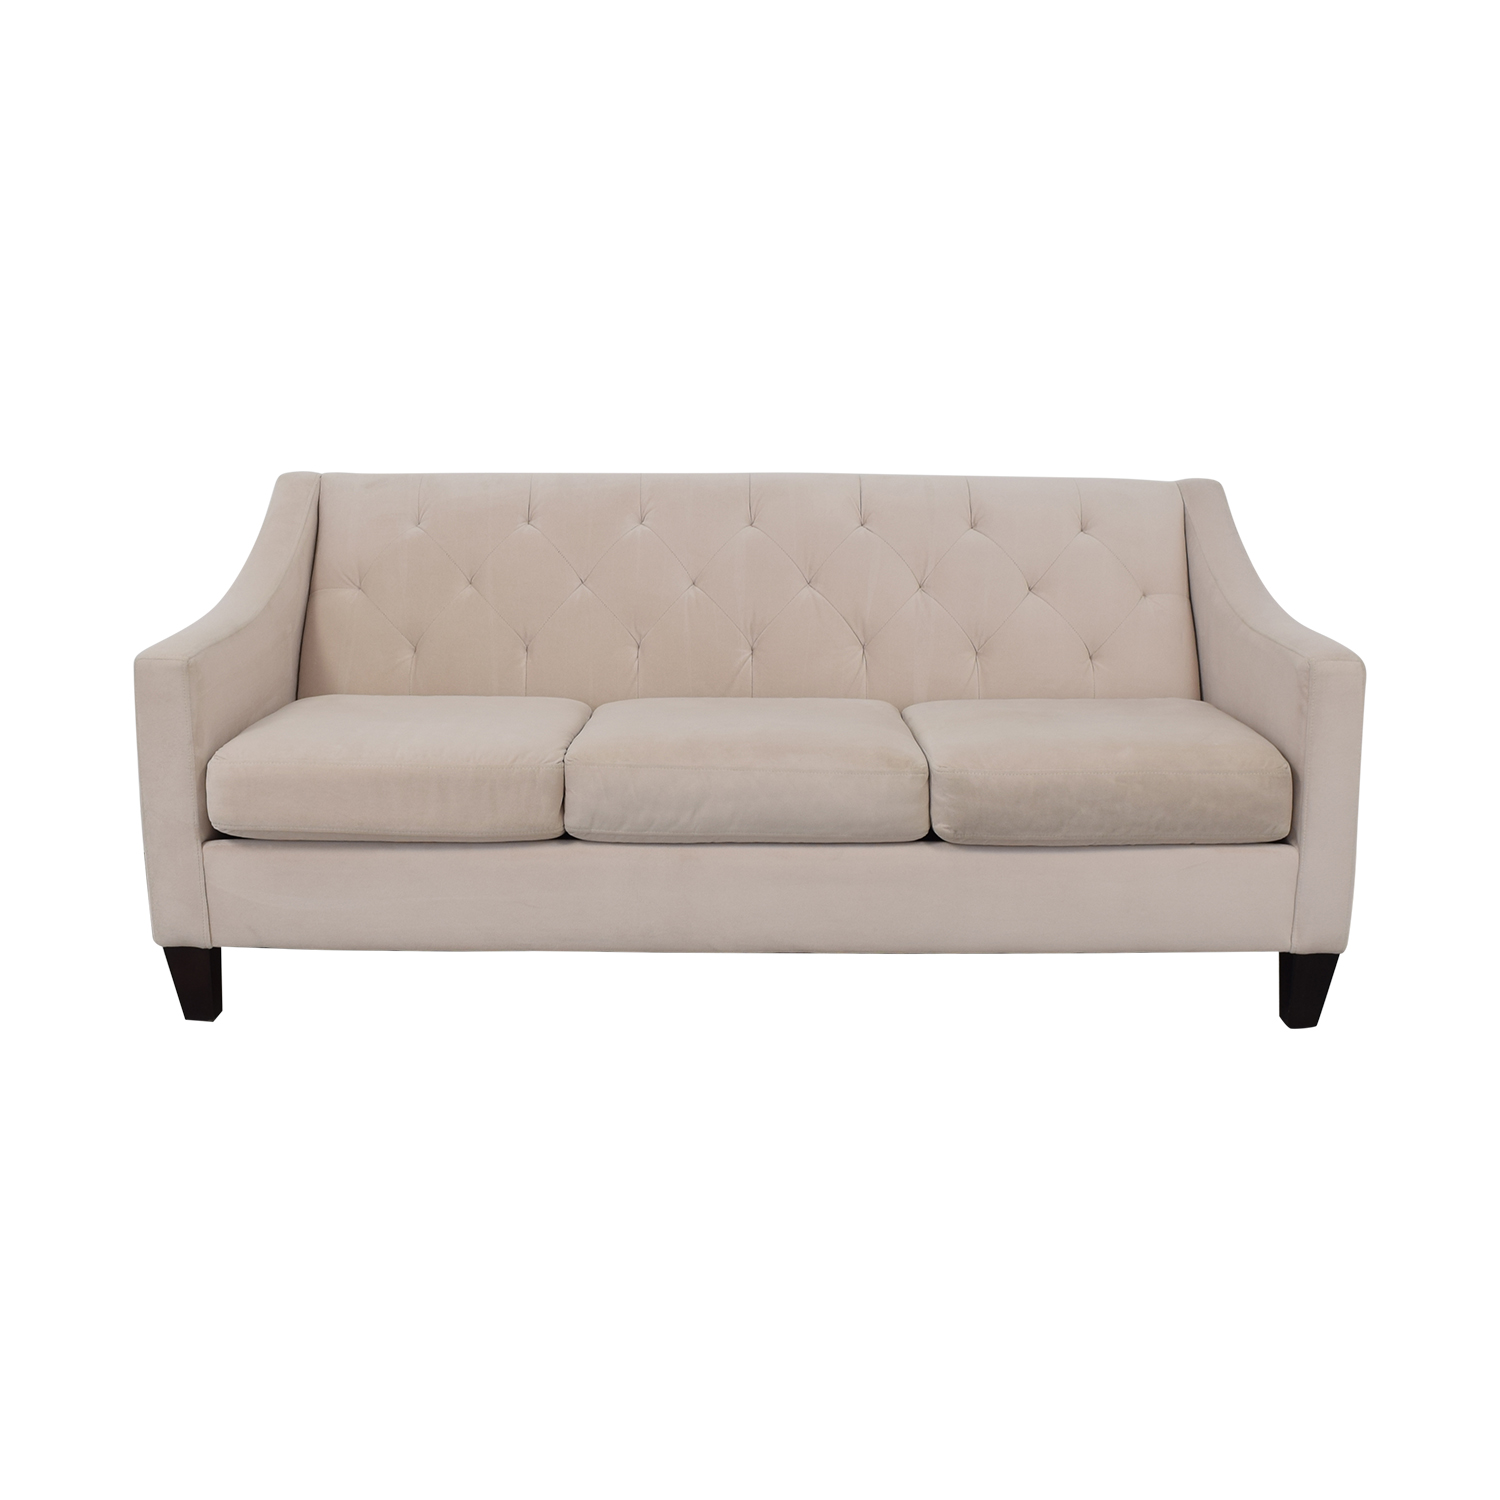 buy Max Home Tufted Microfiber Three Cushion Couch Max Home